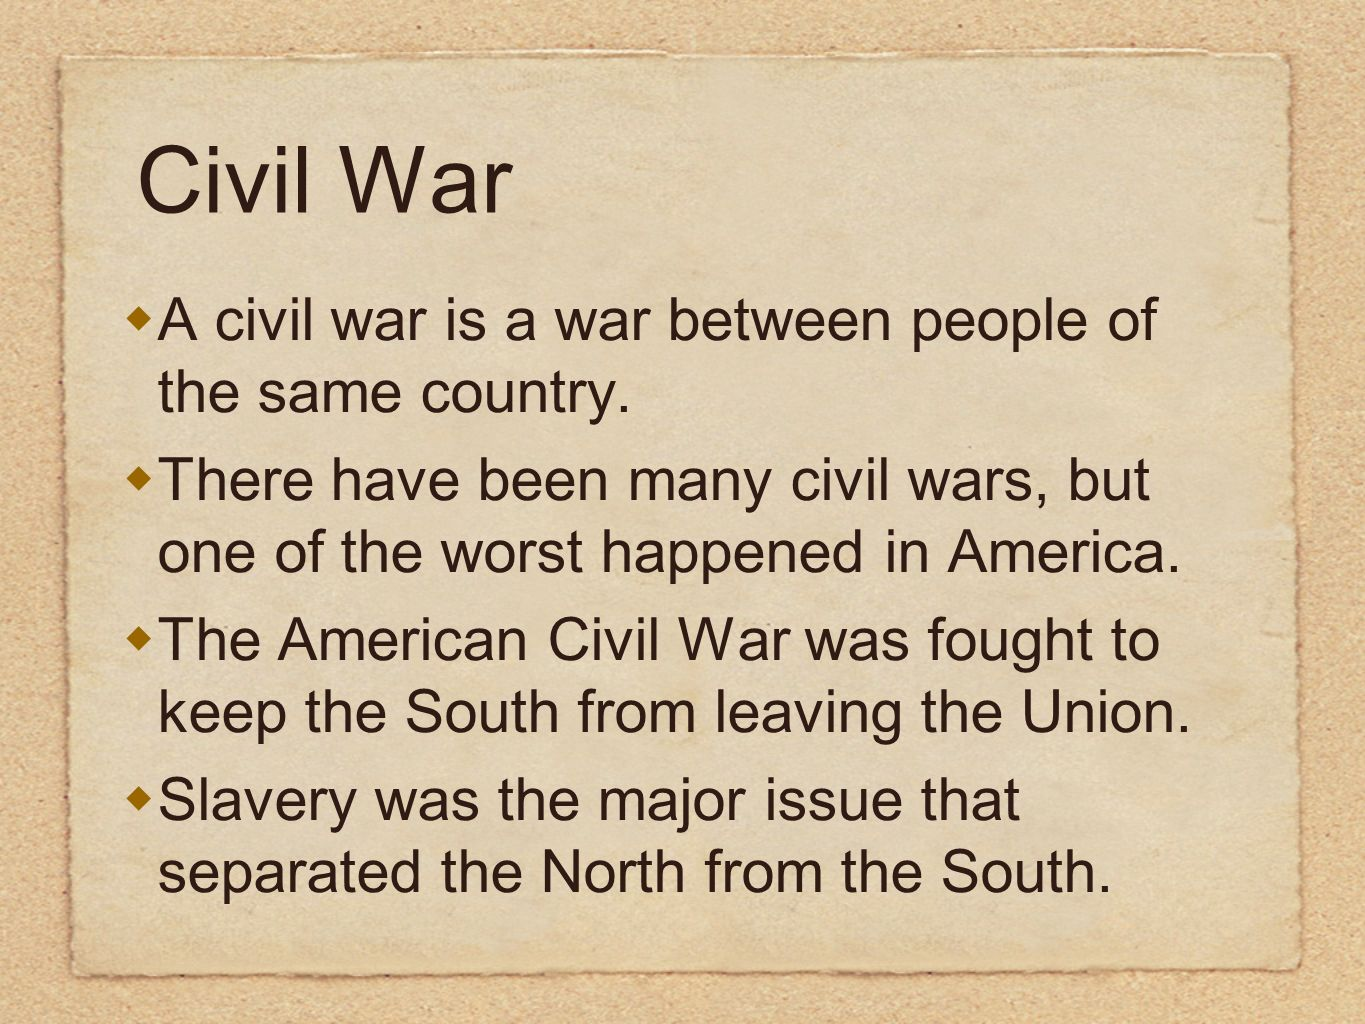 Civil War A civil war is a war between people of the same country. There have been many civil wars, but one of the worst happened in America. The Amer